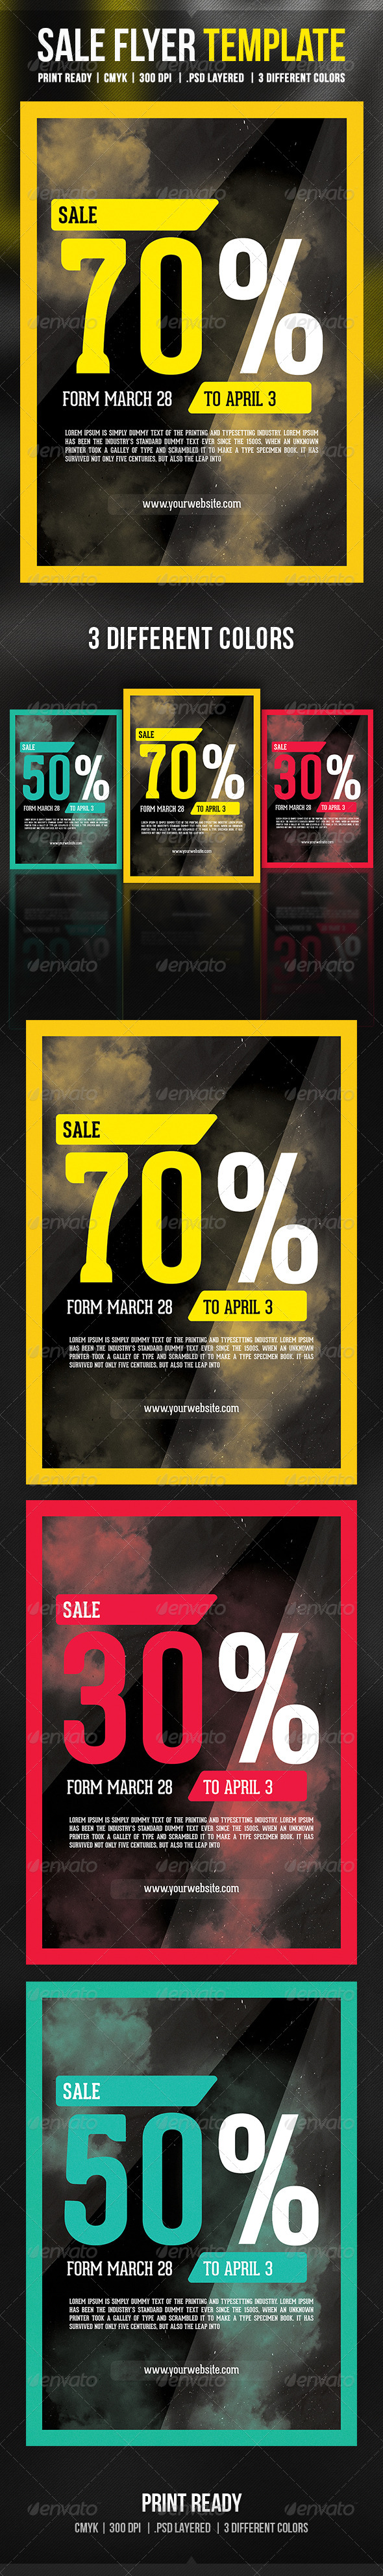 GraphicRiver Sale Flyer Template 6906898